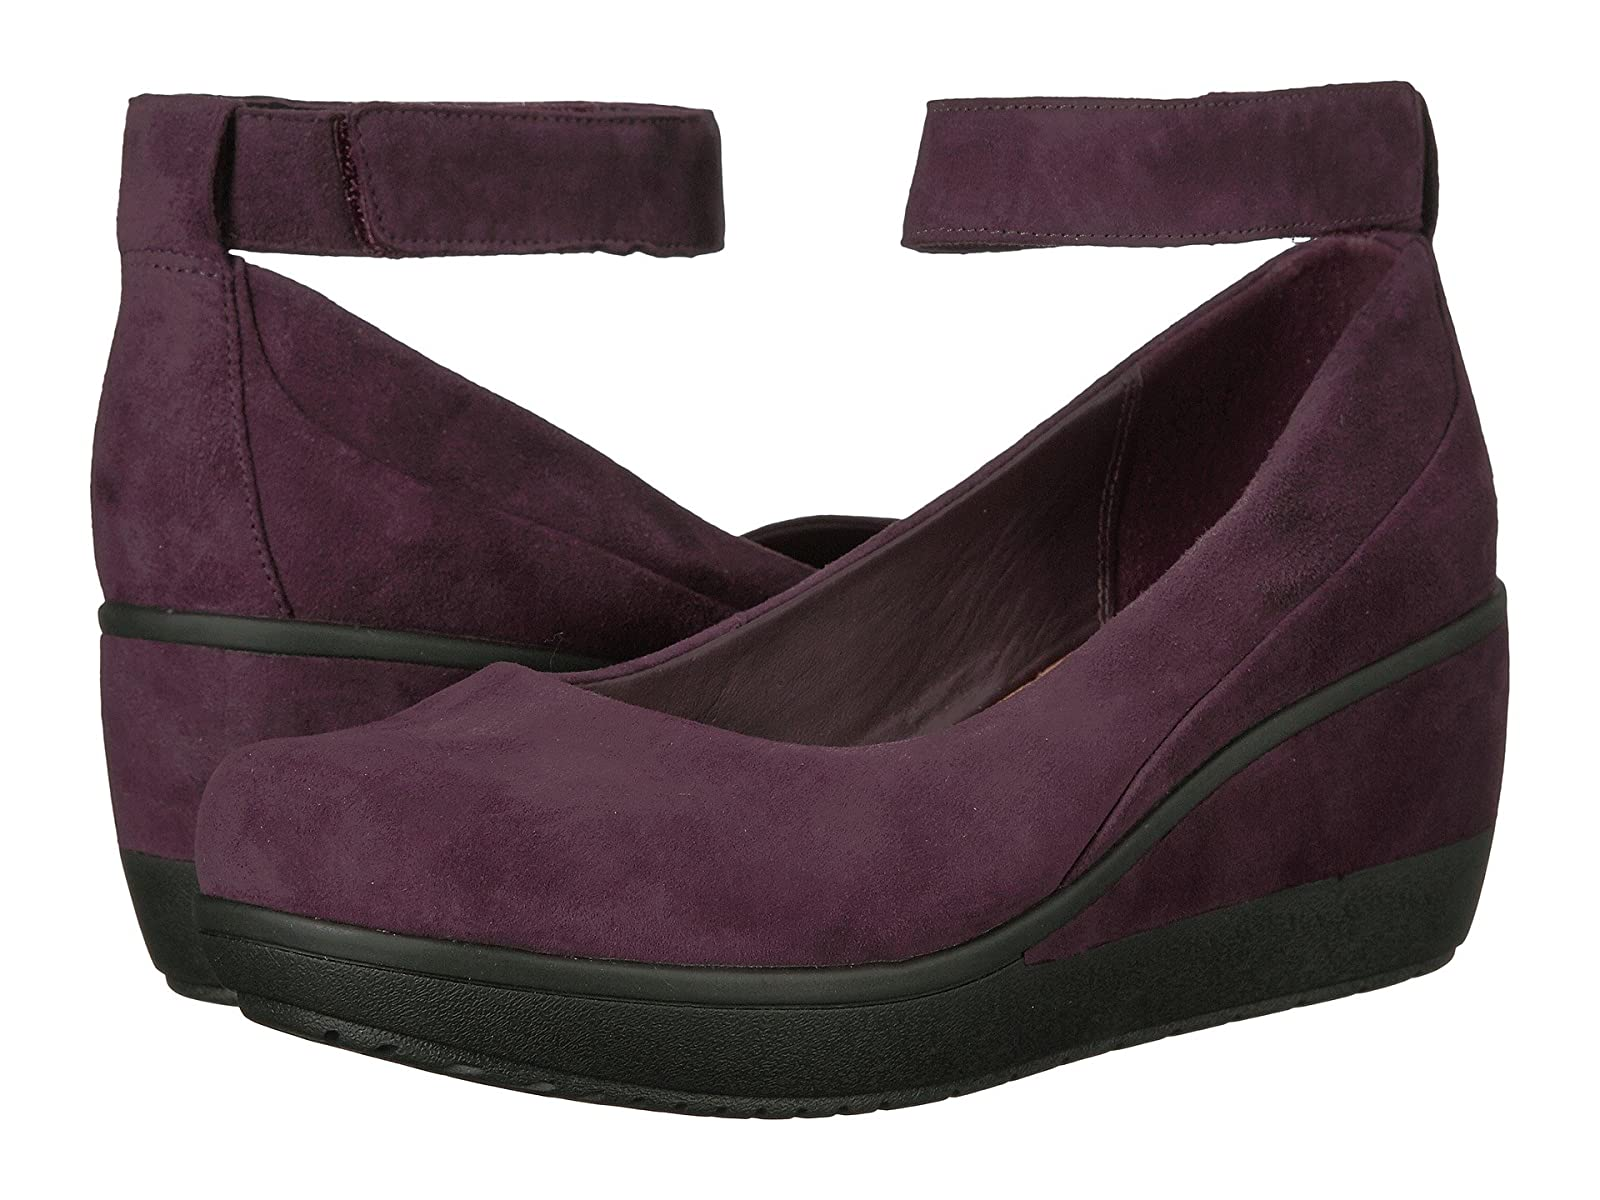 Clarks Wynnmere FoxCheap and distinctive eye-catching shoes